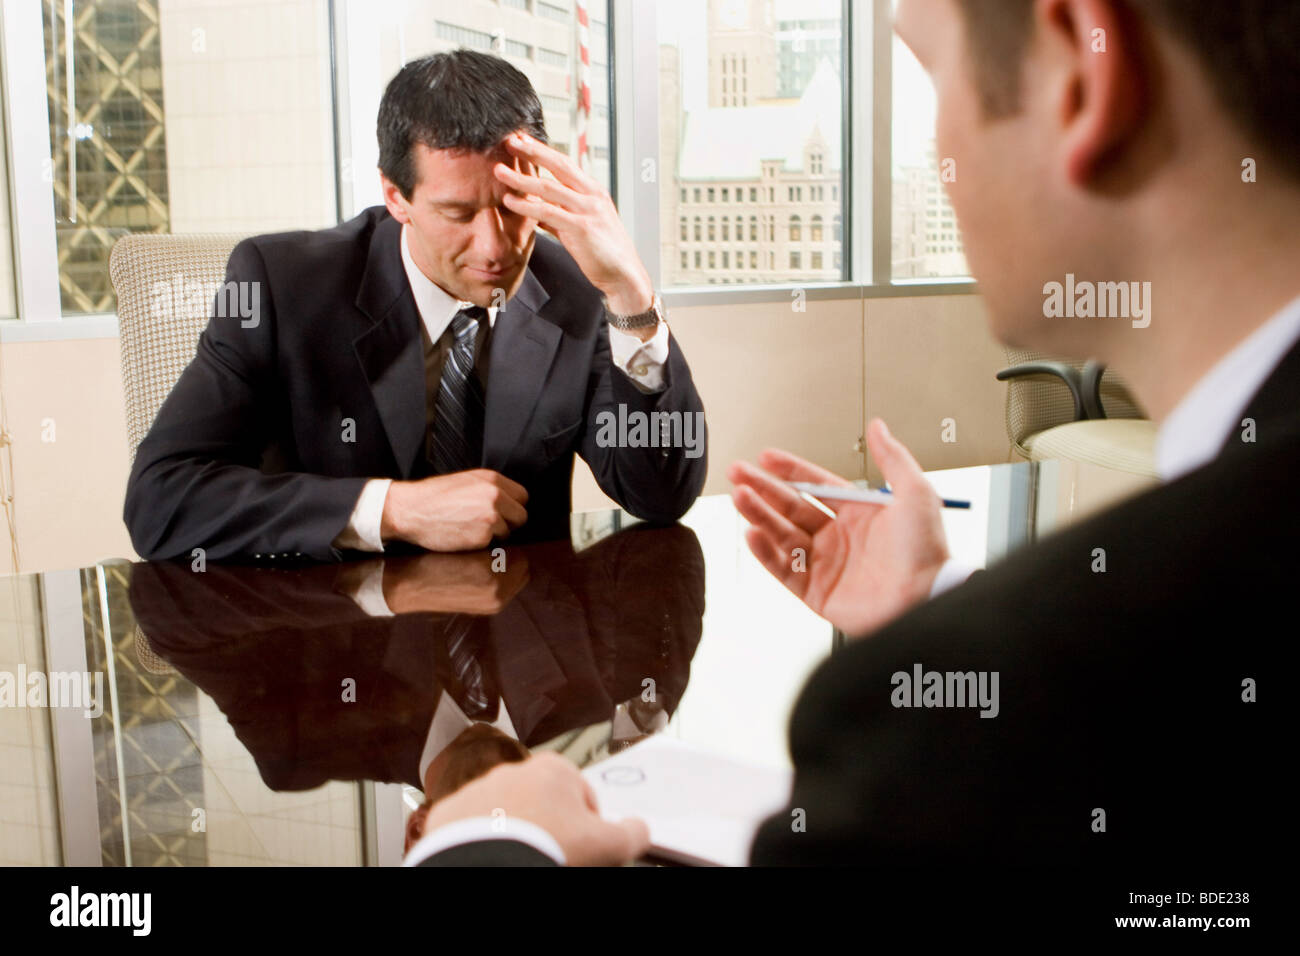 Professional Business Team attending a meeting in conference room - Stock Image